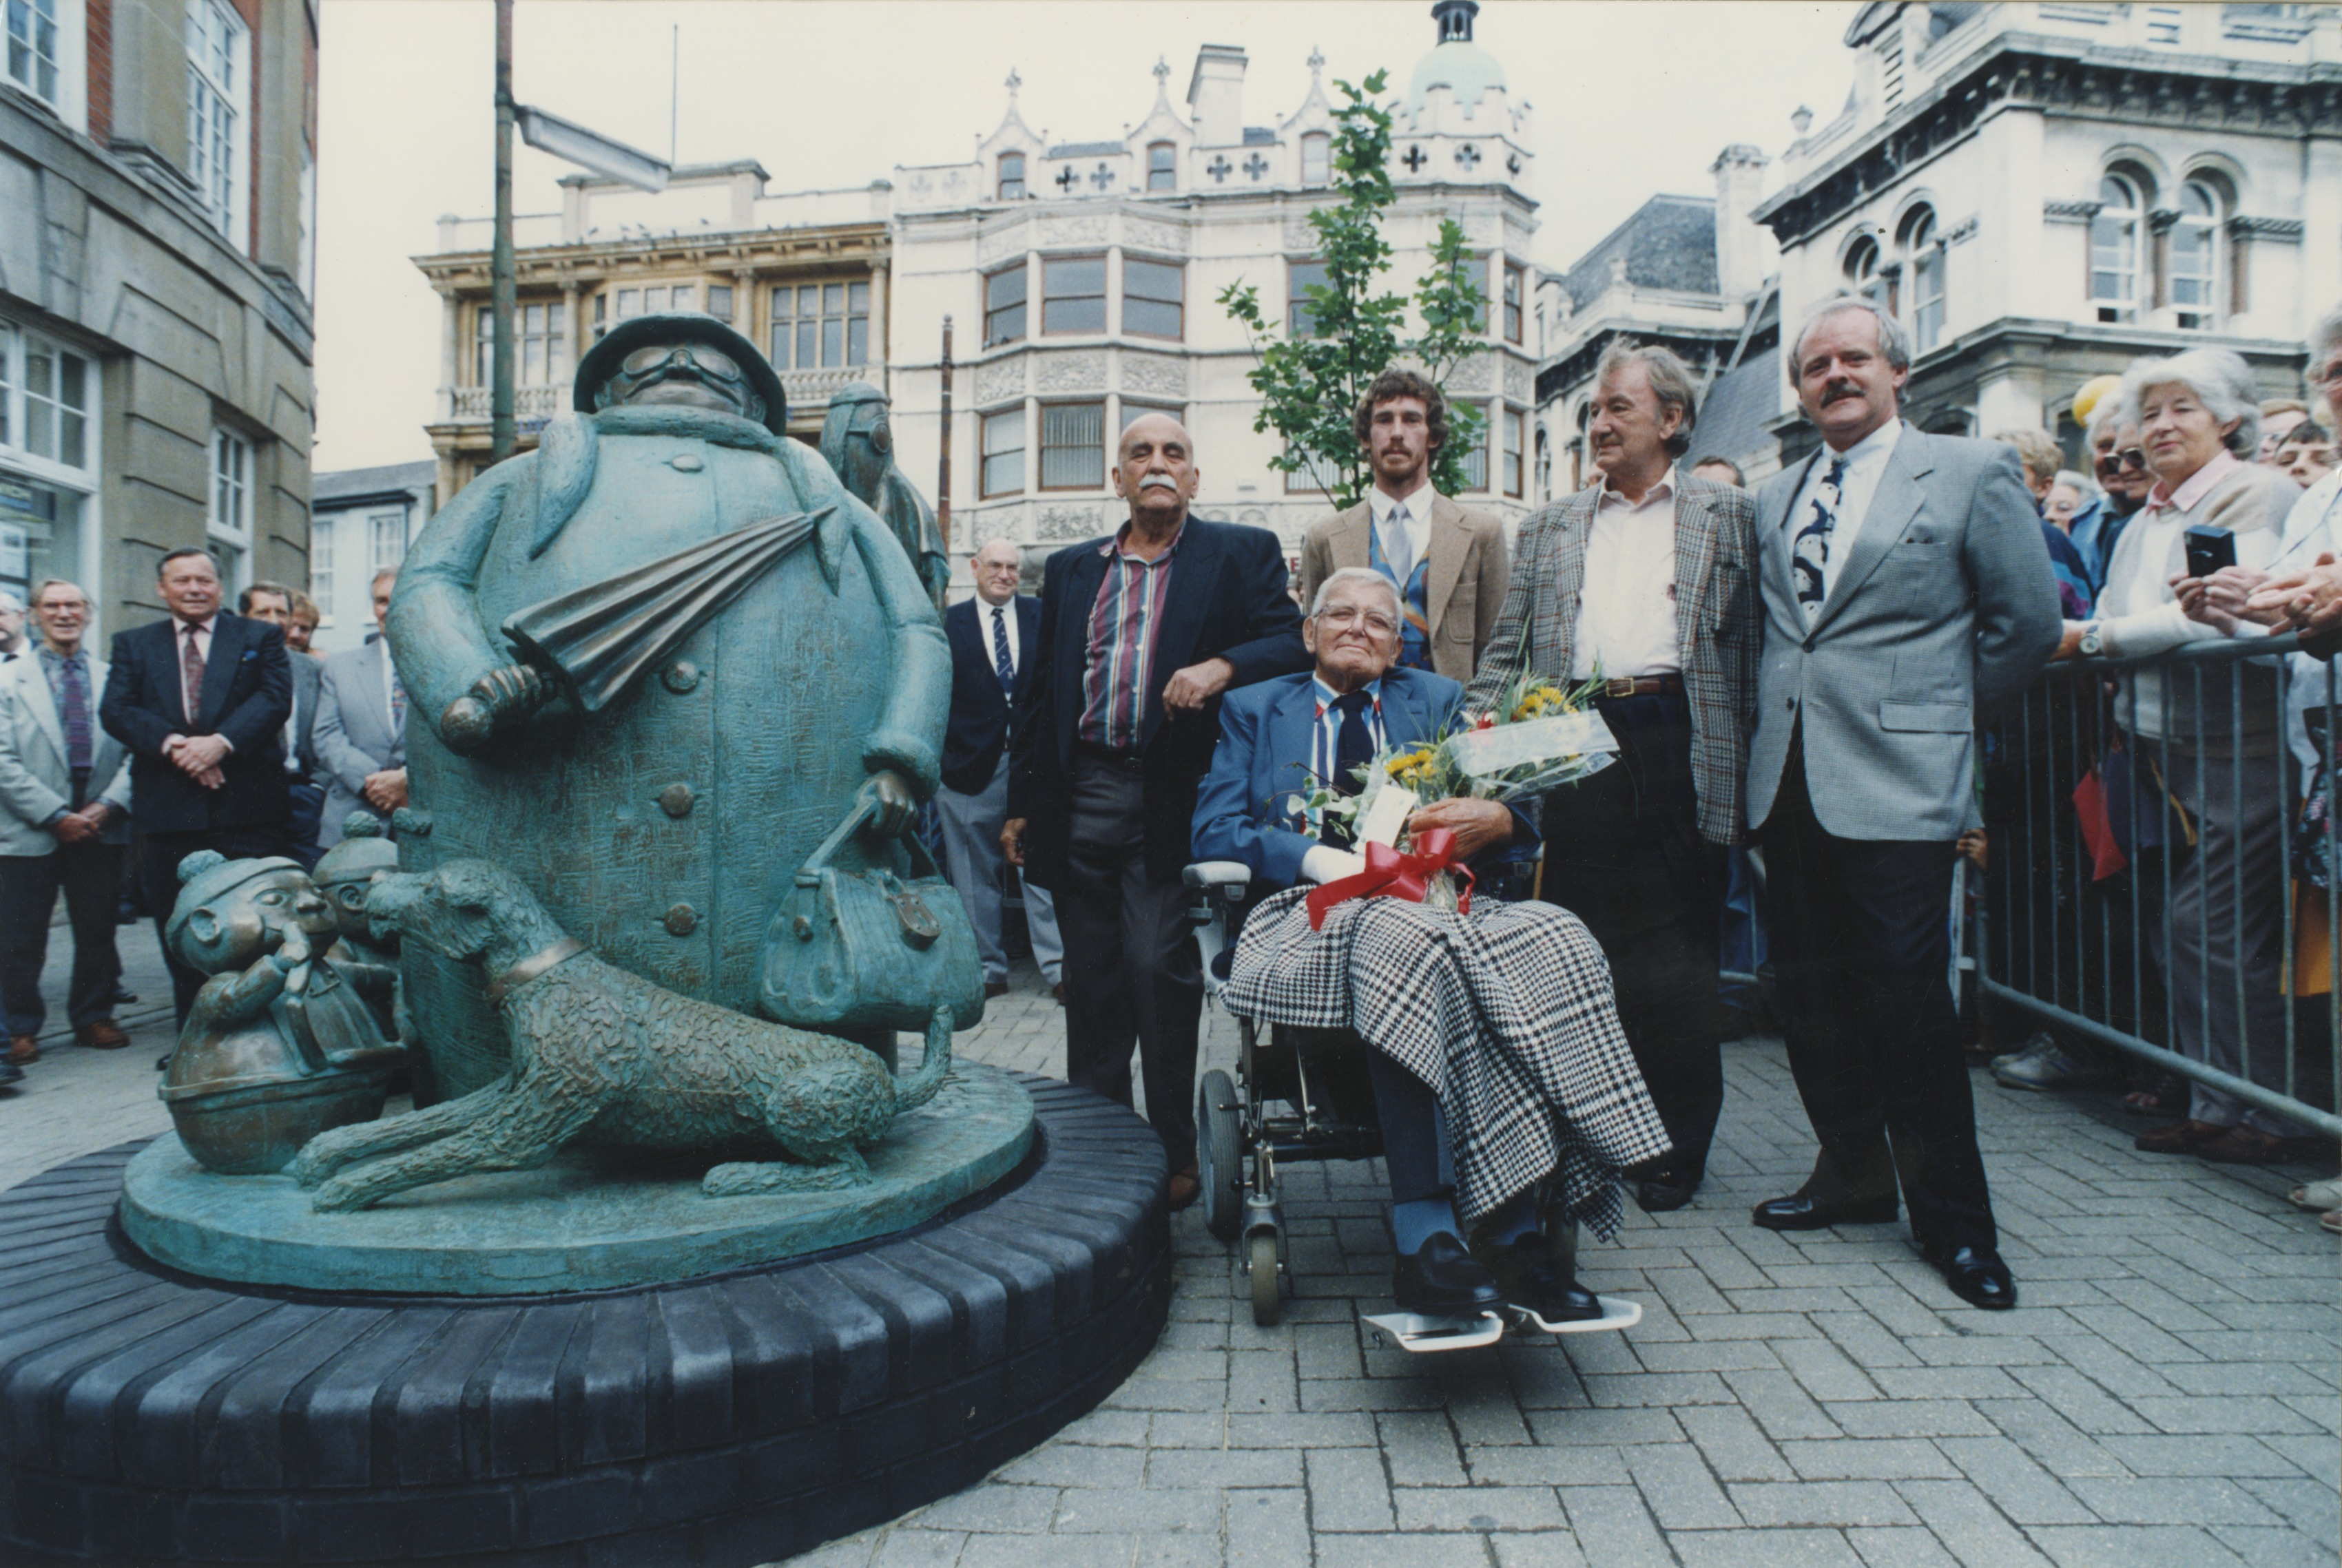 Colour photo of the unveiling of the Grandma statue in Ipswich, featuring actor Warren Mitchell , Giles, the sculptor Miles Robinson, writer and friend Johnny Speight, and Andrew Cameron (Express Newspapers) - September 1993 (Image ref: GAPH00430)